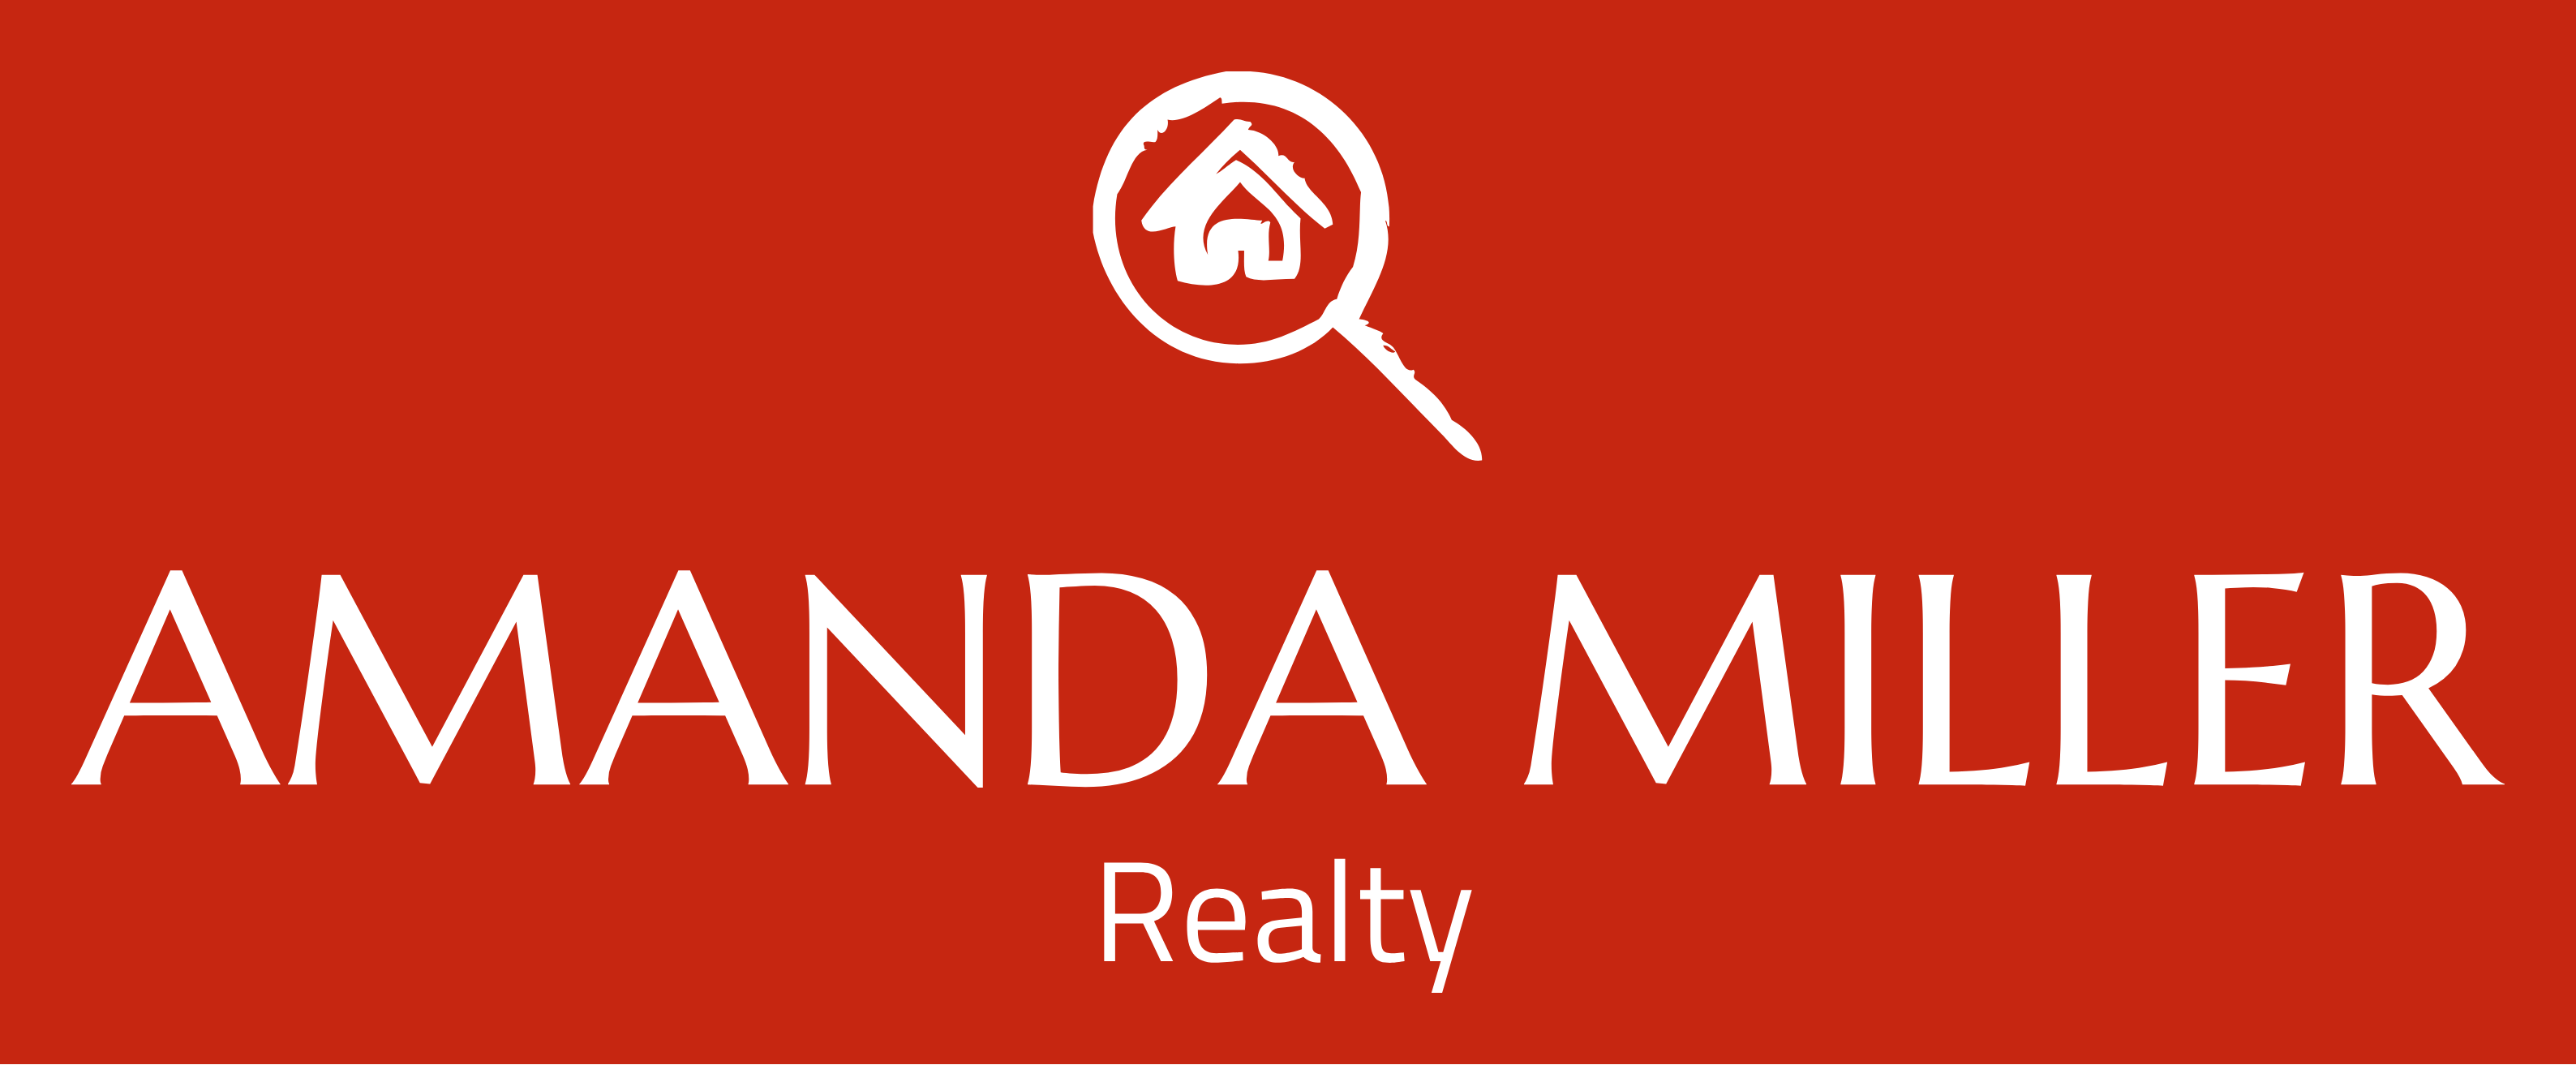 Amanda Miller Realty Group reviews | Real Estate Agents at 300 West Judge Perez - Chalmette LA